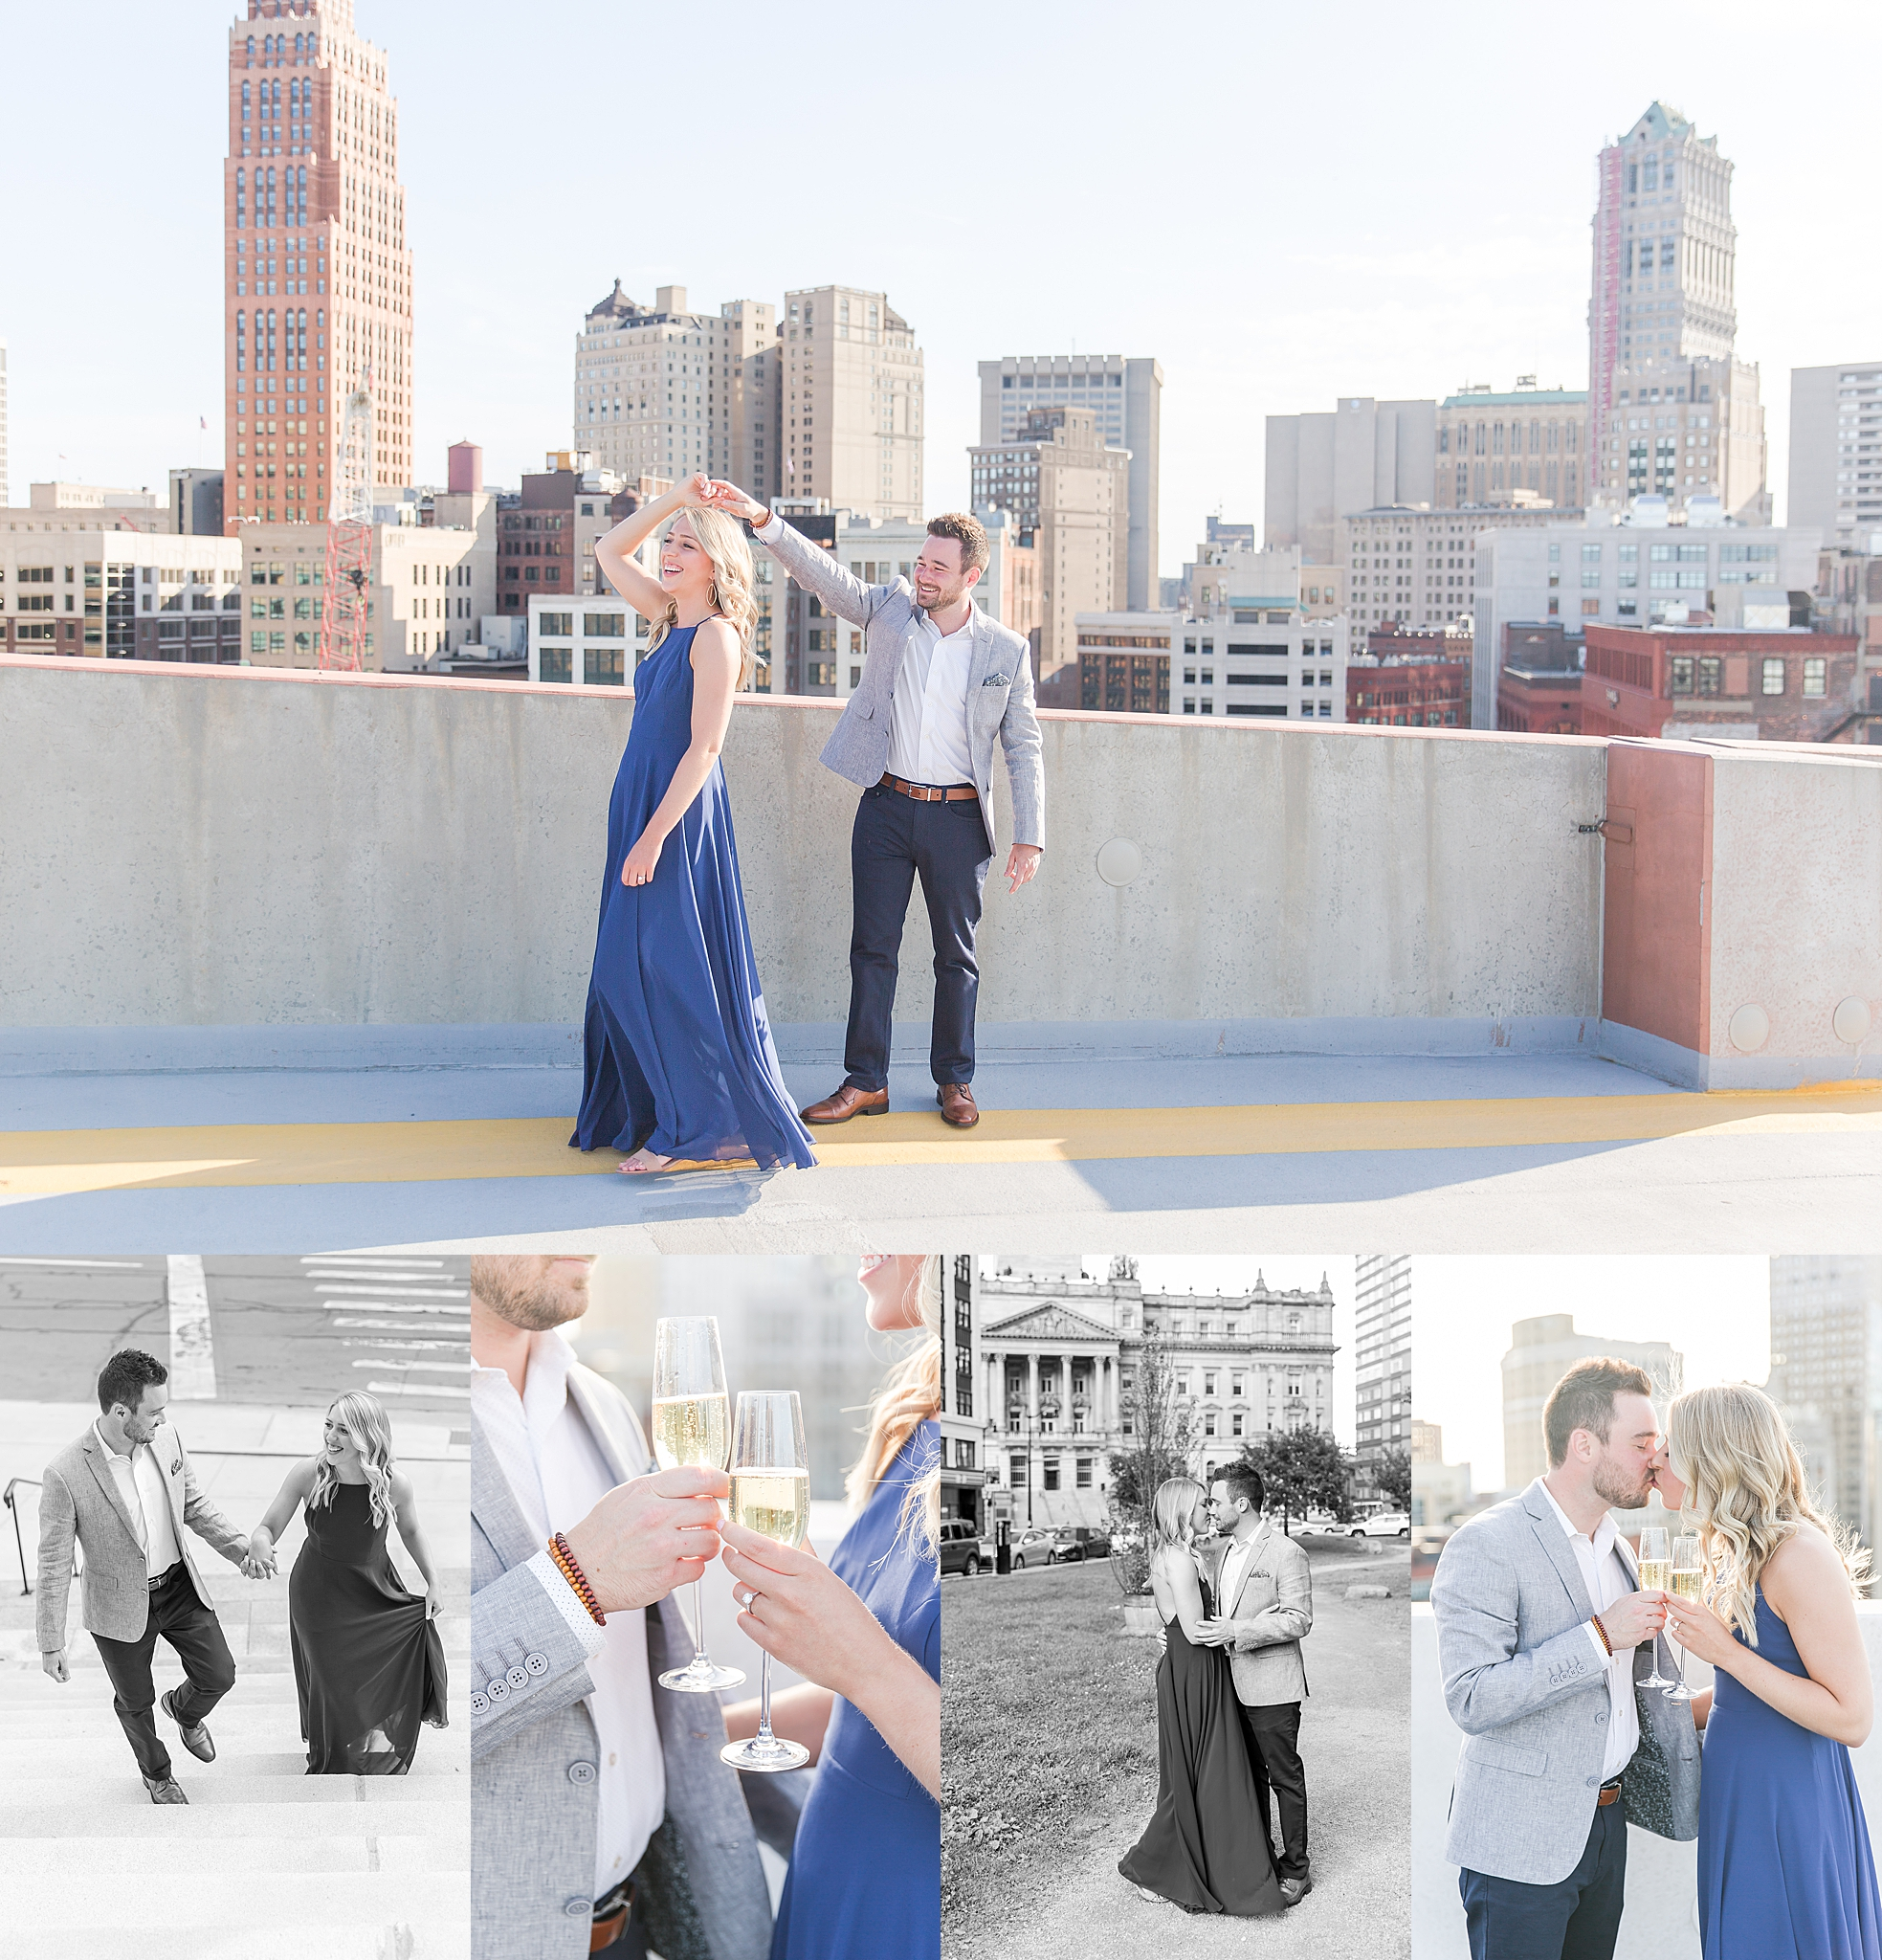 detroit-wedding-photographer-downtown-detroit-belle-isle-engagement-photos-sarah-eric-by-courtney-carolyn-photography_0047.jpg